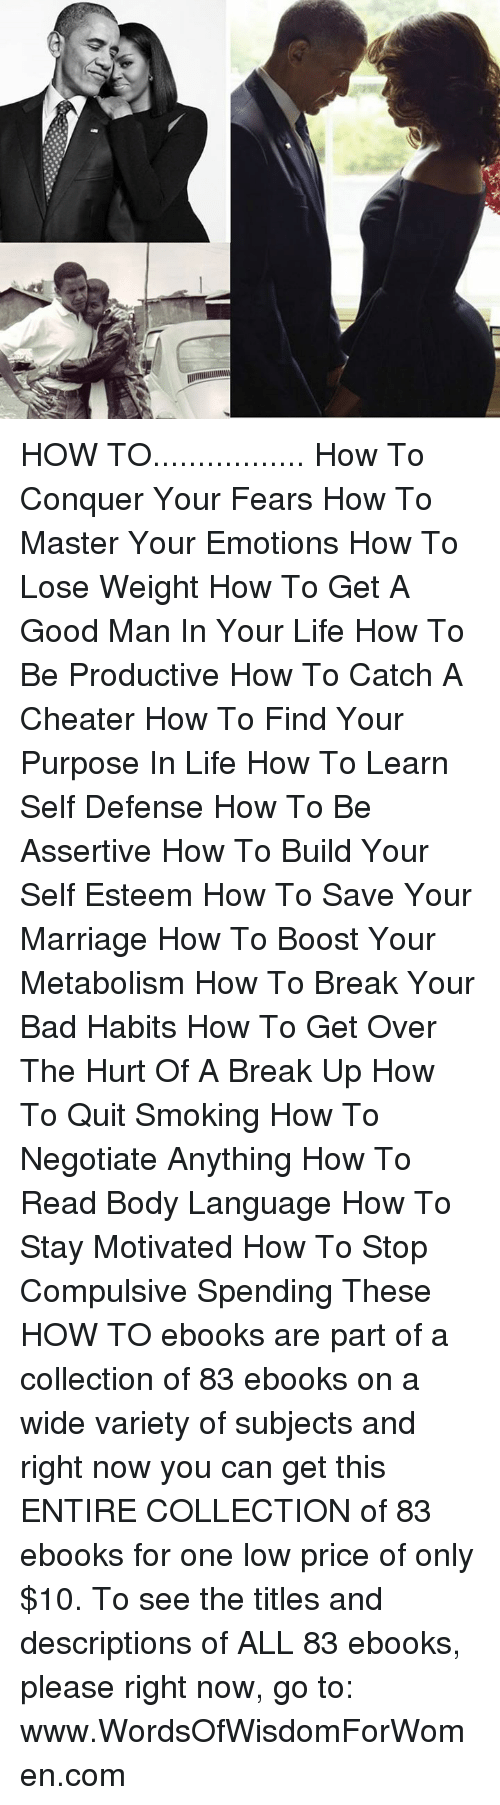 Quitting Smoking: HOW TO................. How To Conquer Your Fears How To Master Your Emotions How To Lose Weight How To Get A Good Man In Your Life  How To Be Productive  How To Catch A Cheater  How To Find Your Purpose In Life  How To Learn Self Defense How To Be Assertive   How To Build Your Self Esteem   How To Save Your Marriage  How To Boost Your Metabolism  How To Break Your Bad Habits   How To Get Over The Hurt Of A Break Up  How To Quit Smoking  How To Negotiate Anything  How To Read Body Language   How To Stay Motivated  How To Stop Compulsive Spending    These HOW TO ebooks are part of a collection of 83 ebooks on a wide variety of subjects and right now you can get this ENTIRE COLLECTION of 83 ebooks for one low price of only $10. To see the titles and descriptions of ALL 83 ebooks, please right now, go to: www.WordsOfWisdomForWomen.com